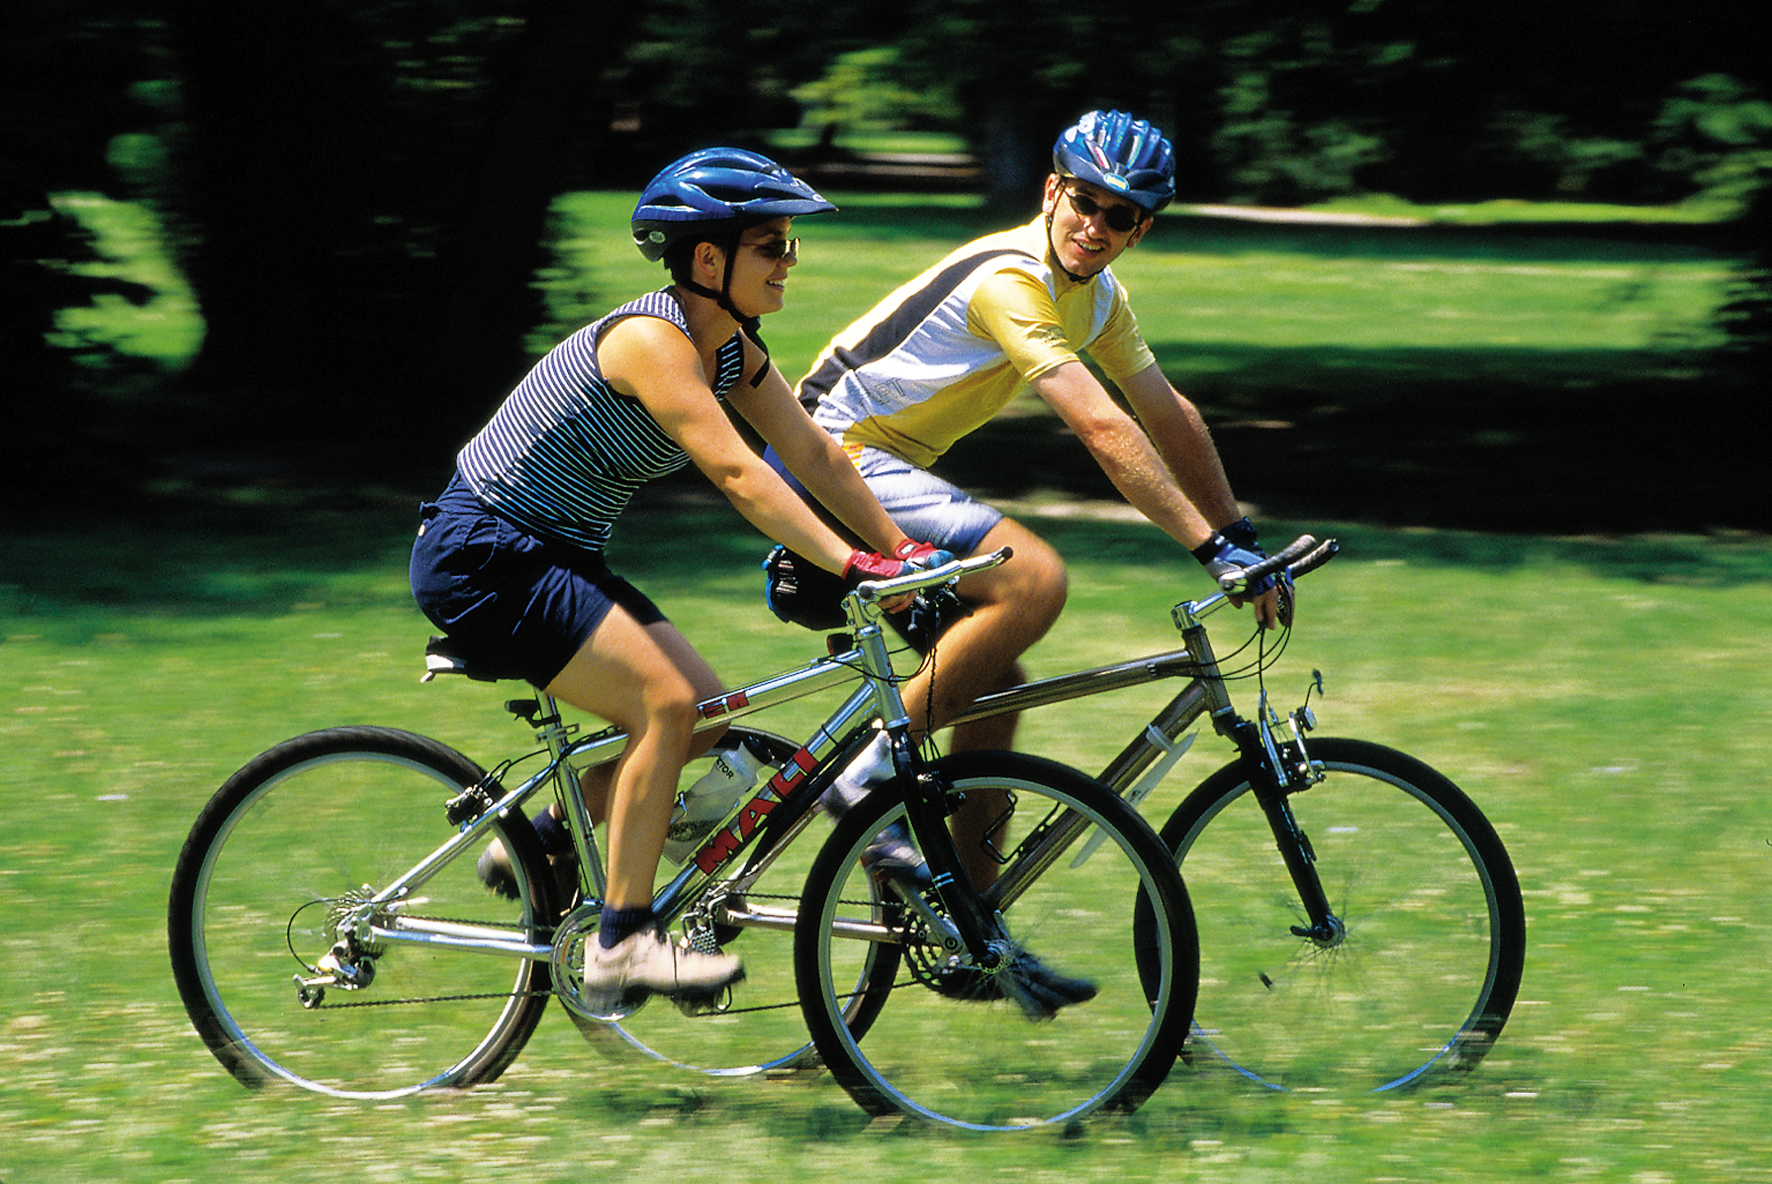 Cycling Images